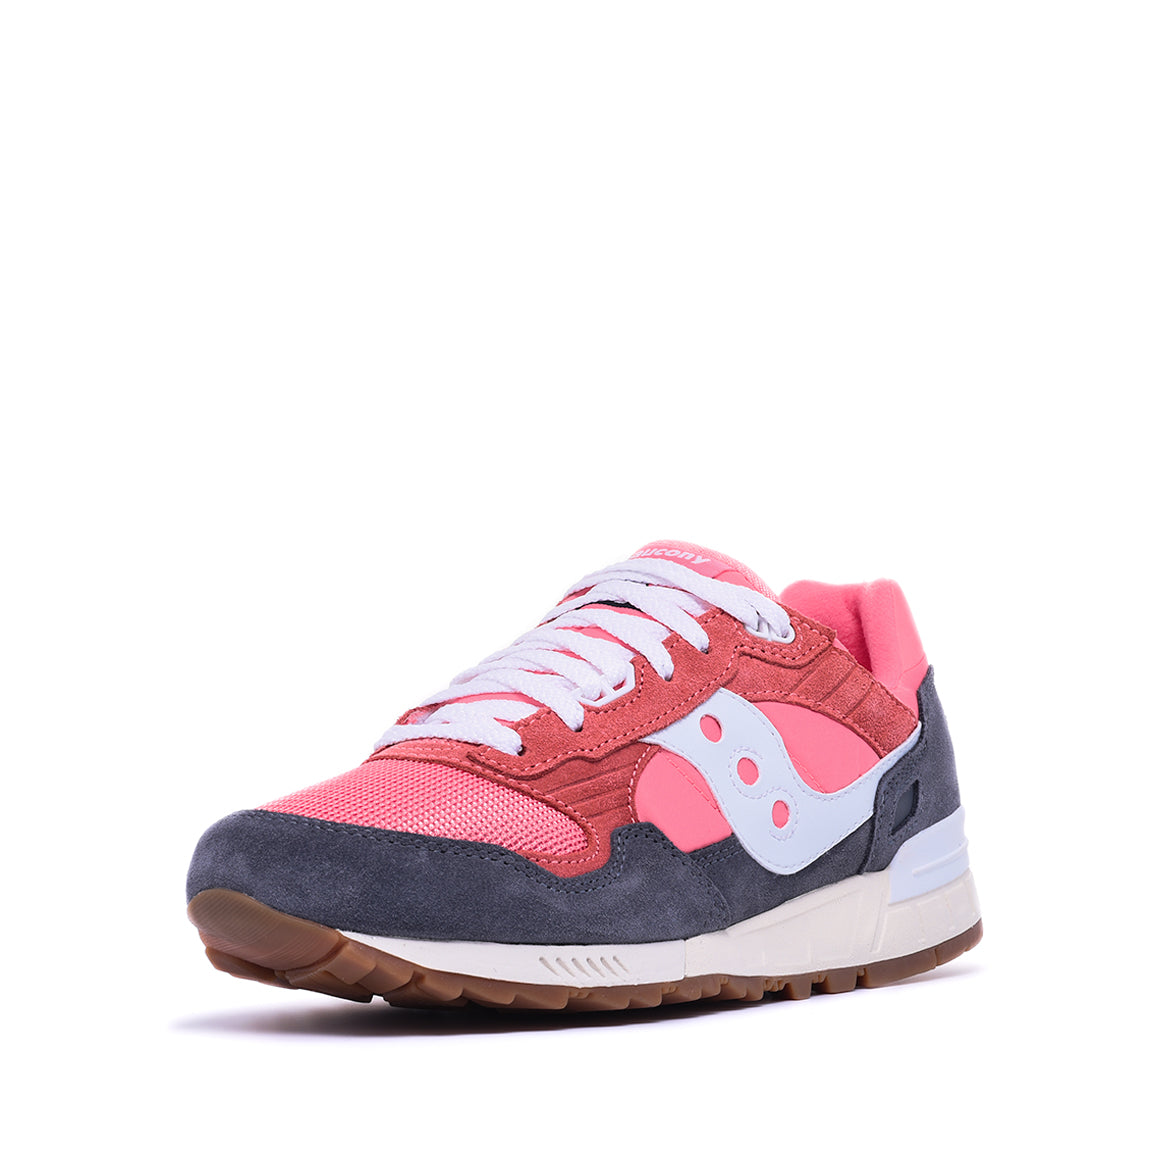 SHADOW 5000 VINTAGE - PINK / WHITE